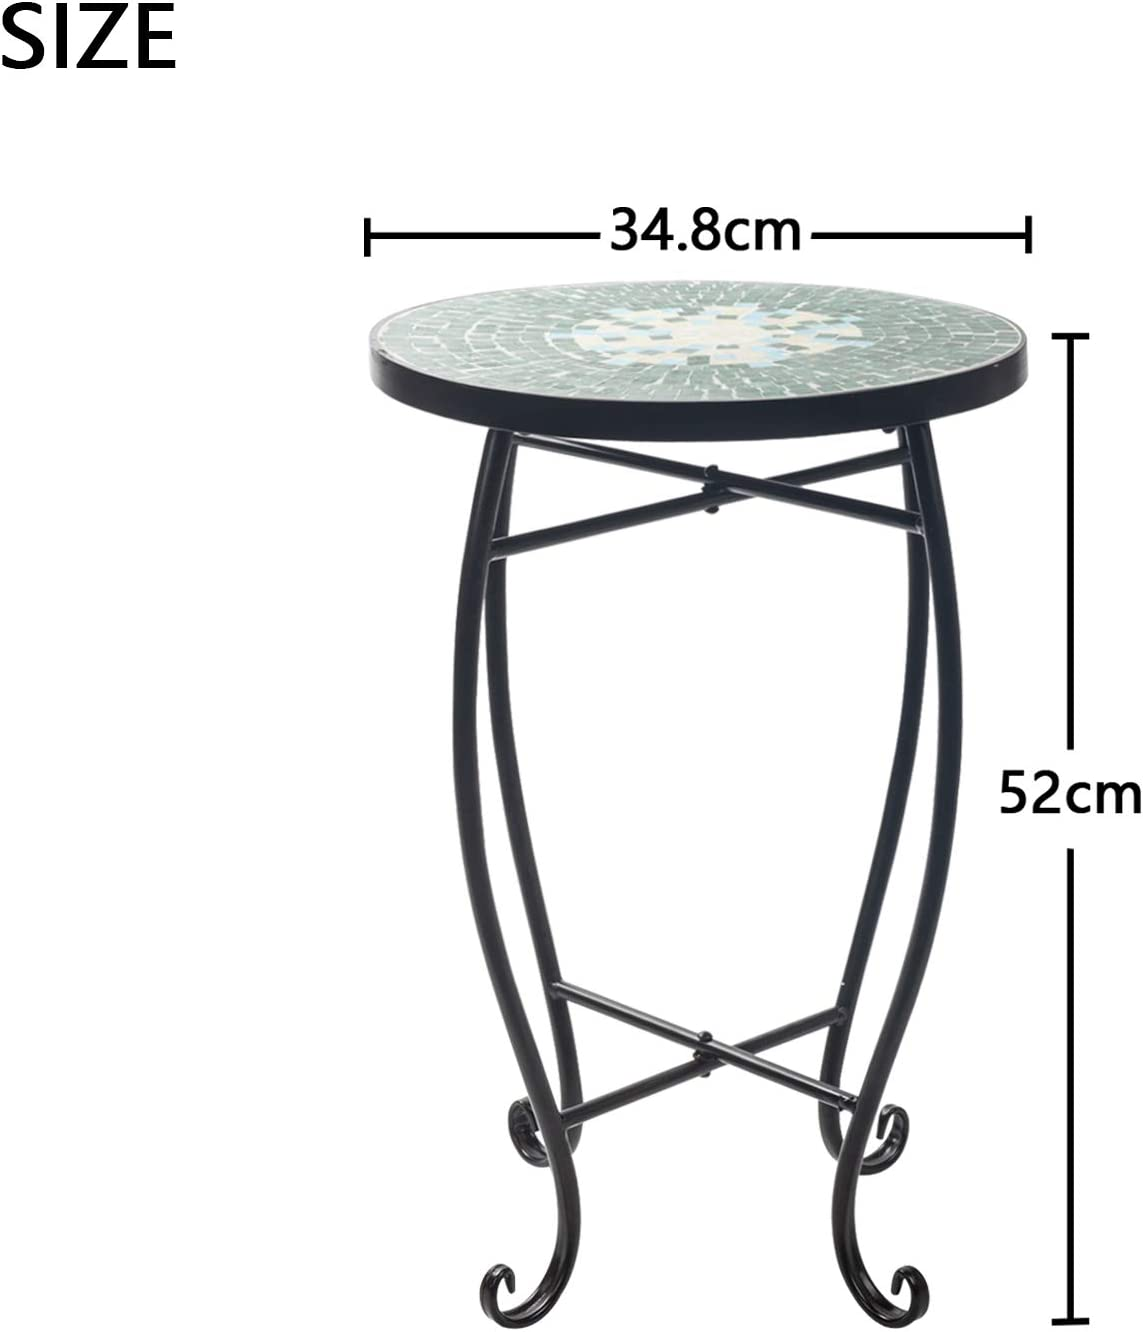 Green D4P Display4top Mosaic Round Outdoor Accent Table,Plant Flower Stand,Round Side Table,52 x 34.8cm